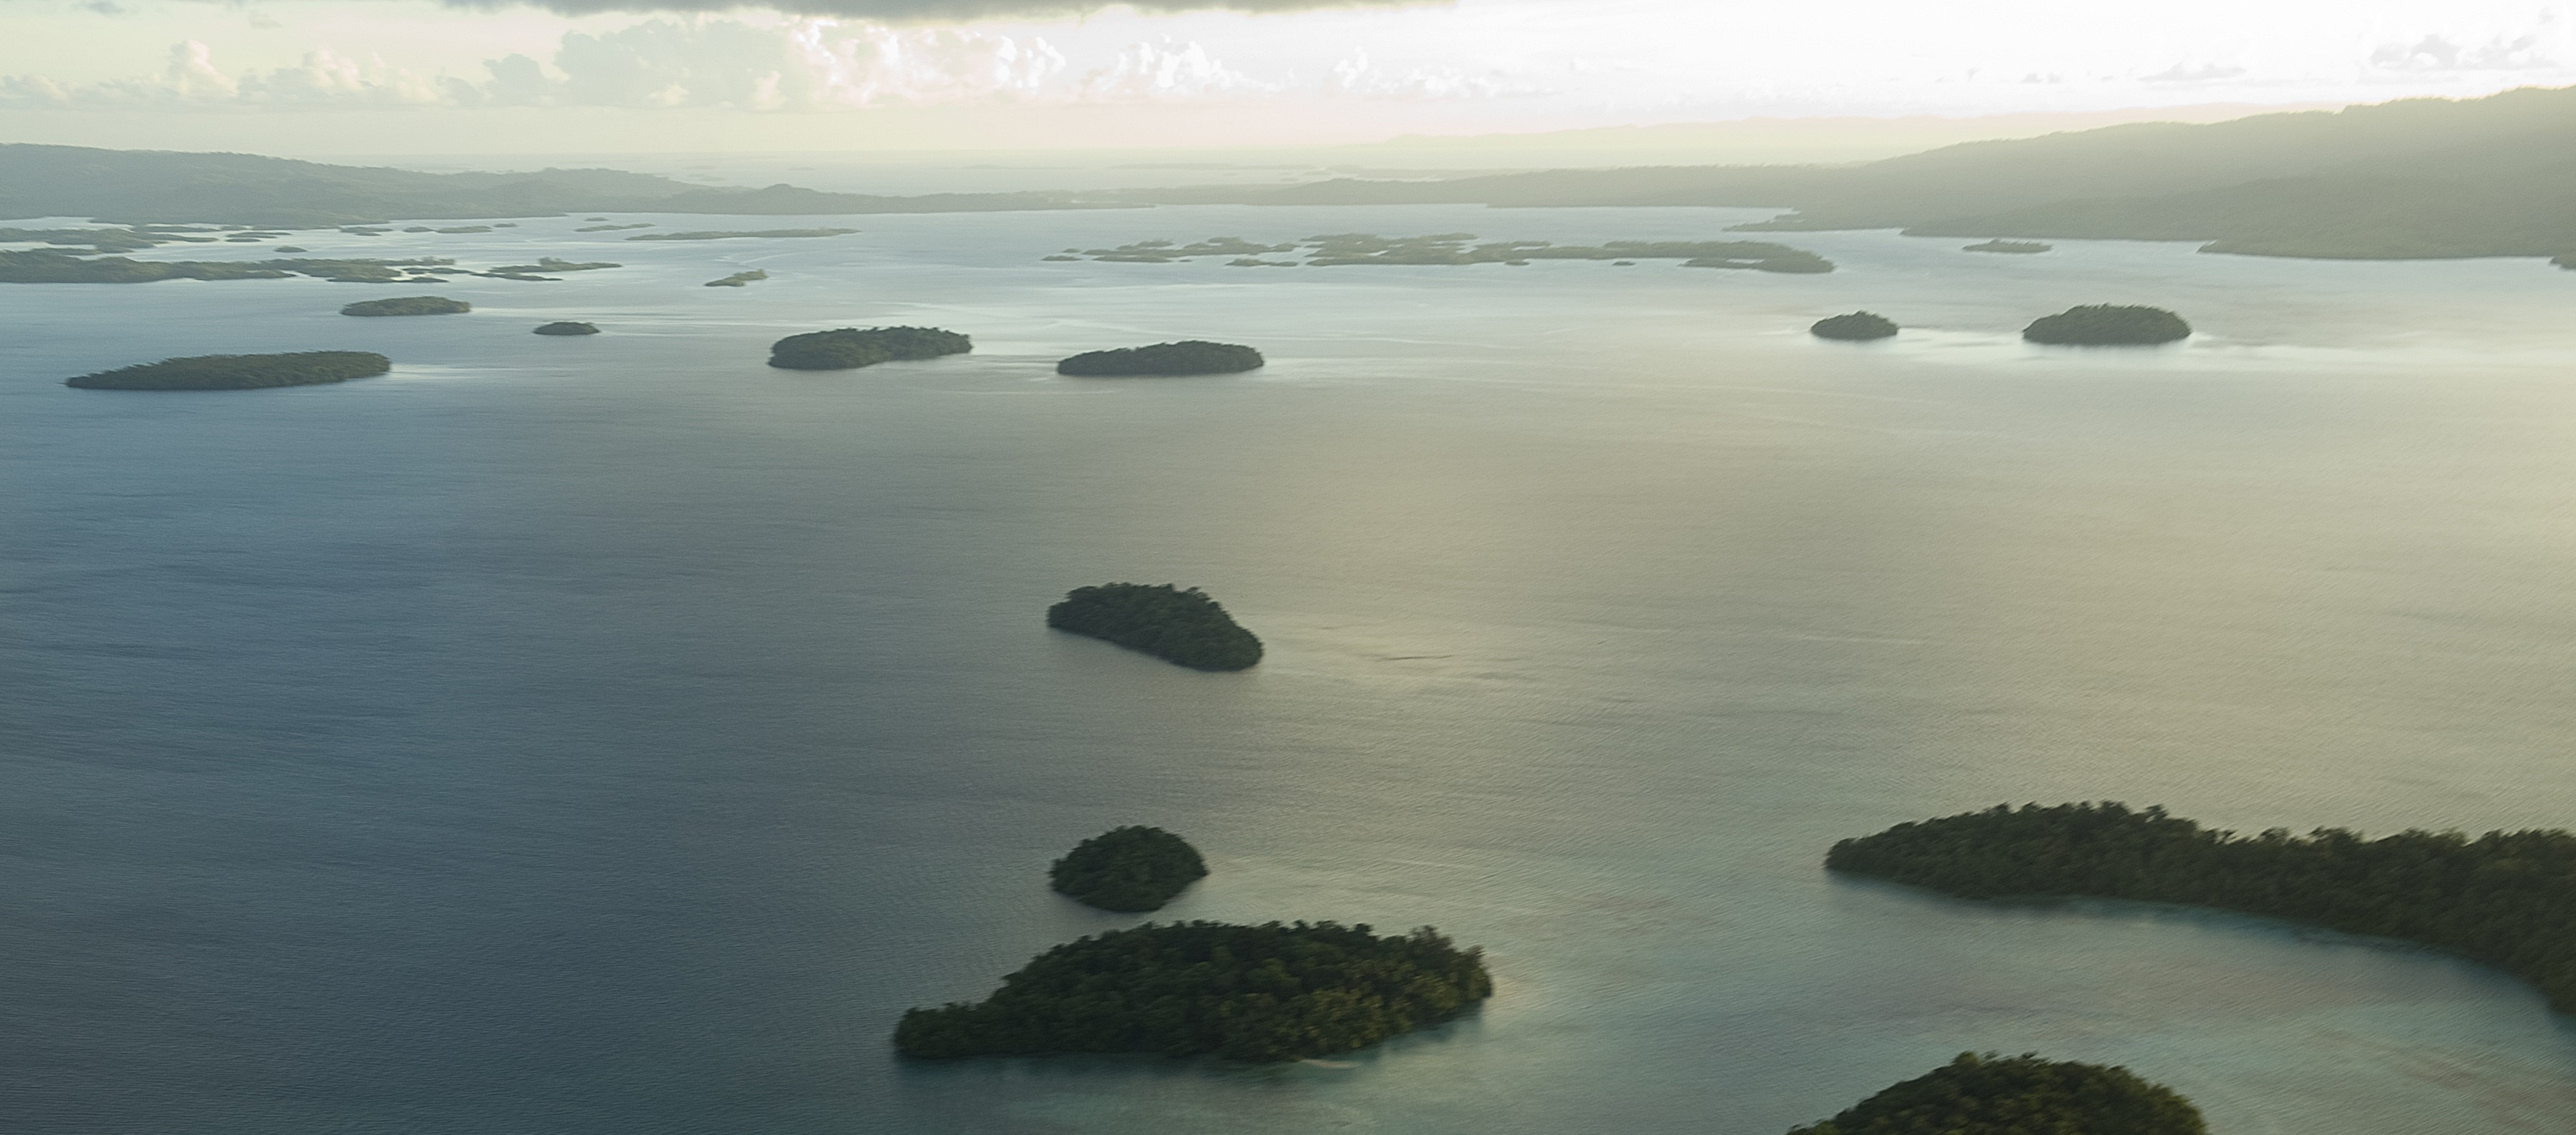 Marovo Lagoon in Solomon Islands (Photo: Flickr/United Nations Photos)